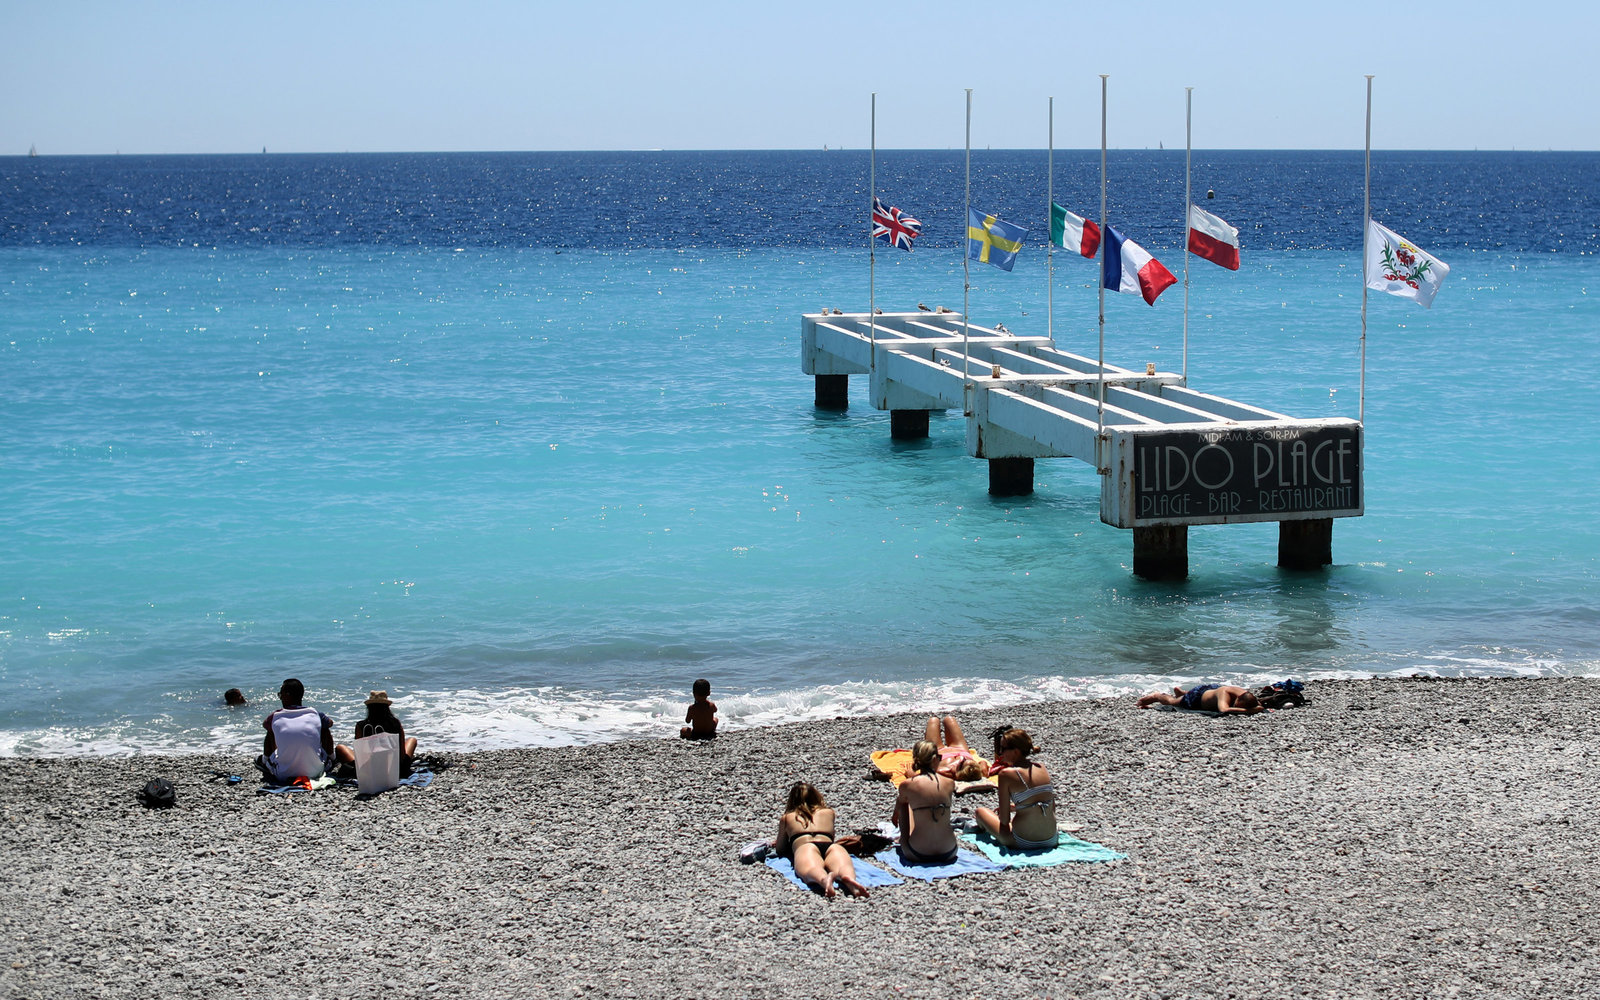 Burkini Ban On Nice Beaches Sparks Outrage